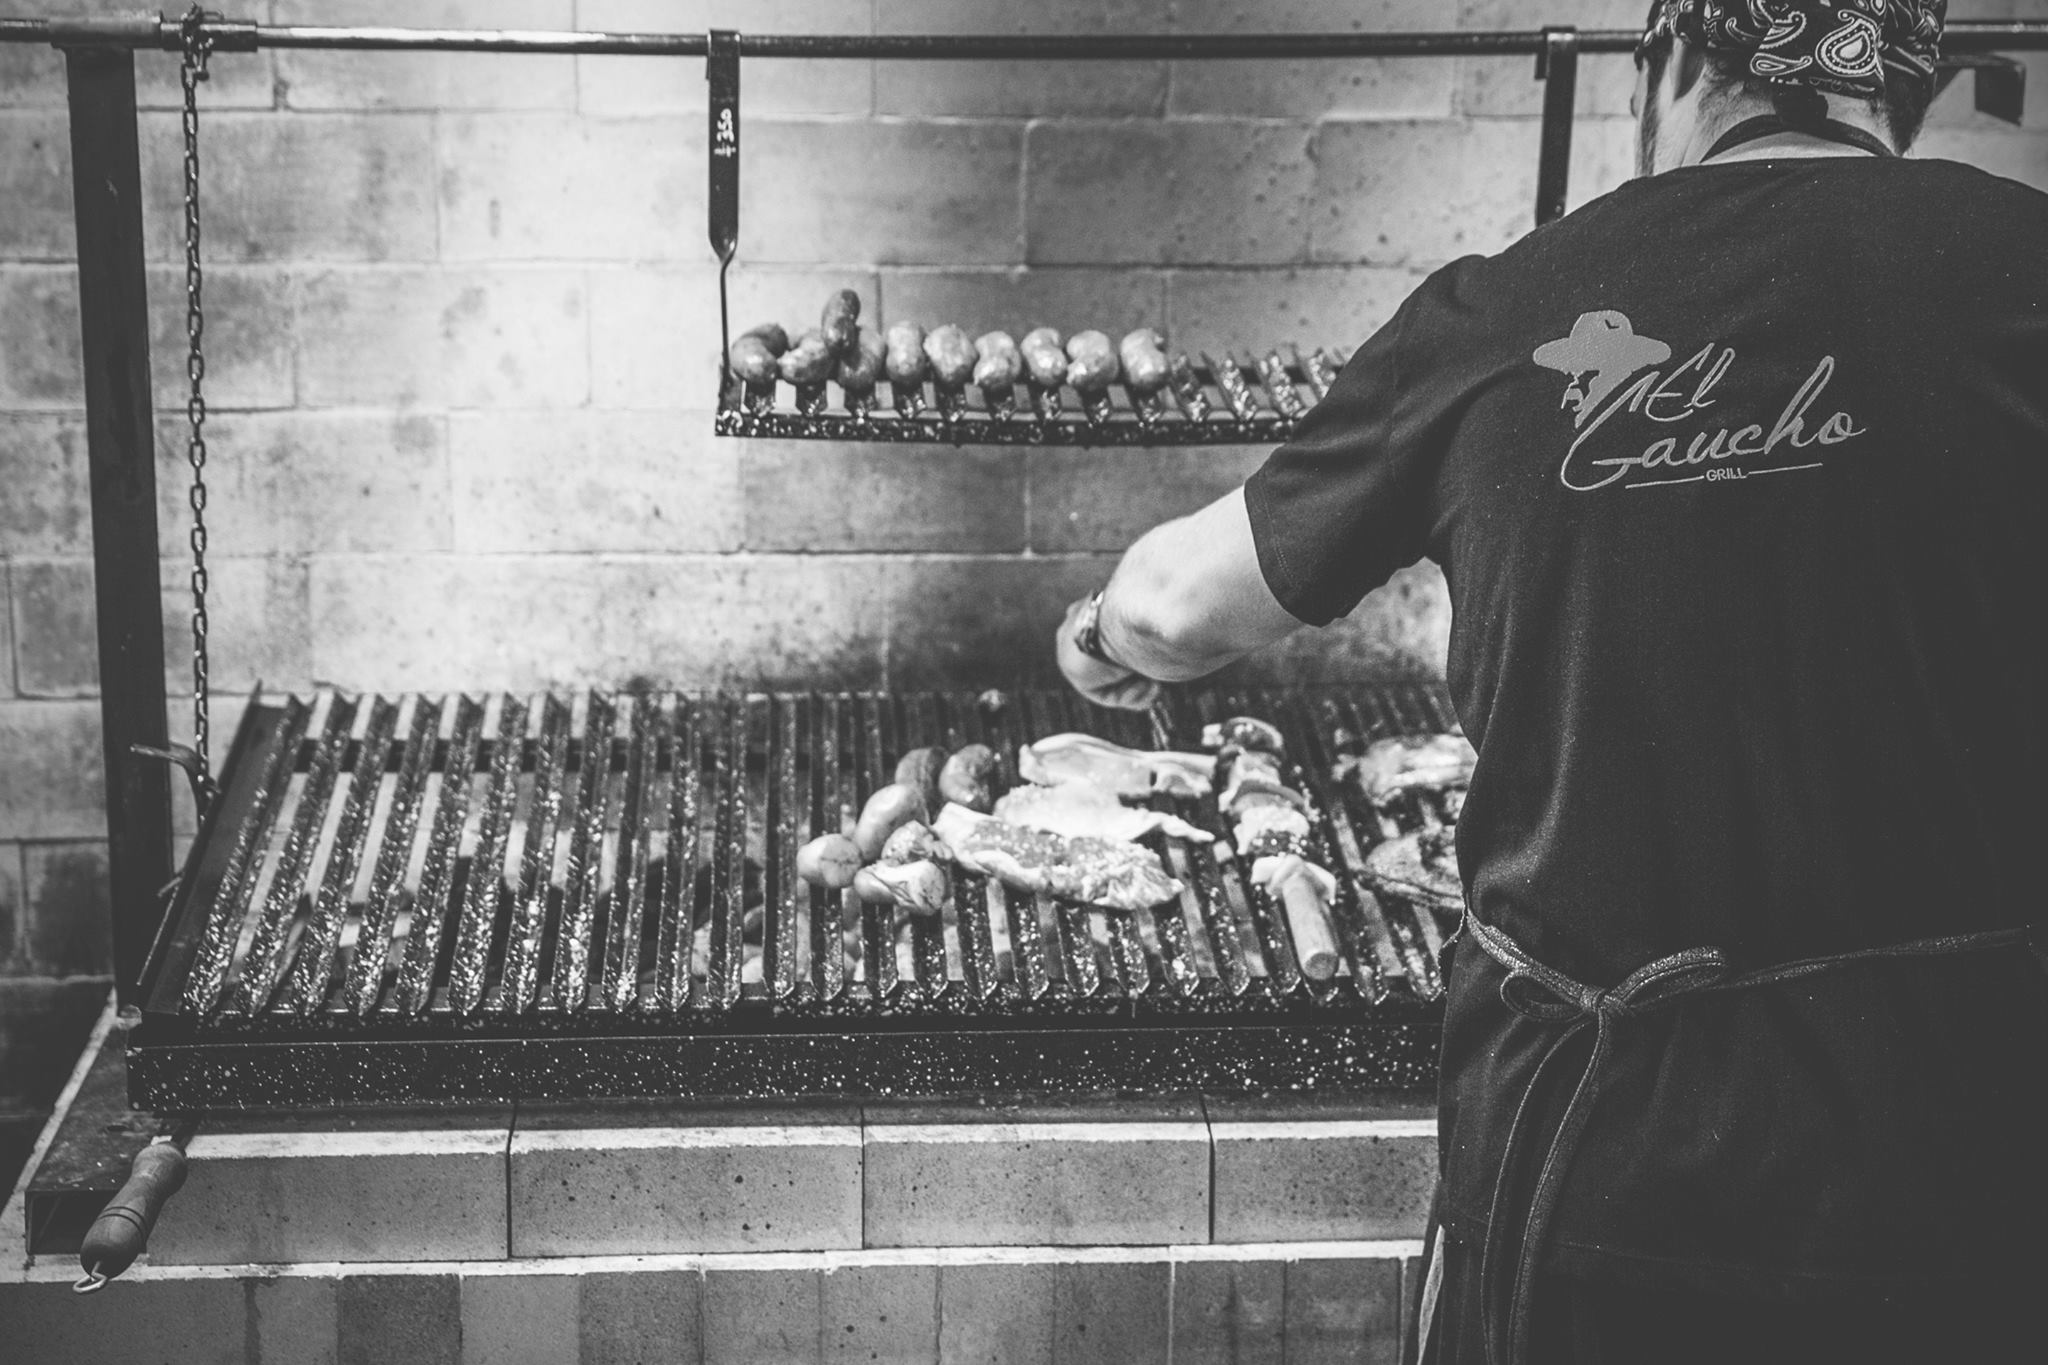 Outdoor Cooking & Eating Just Barbeque El Gaucho